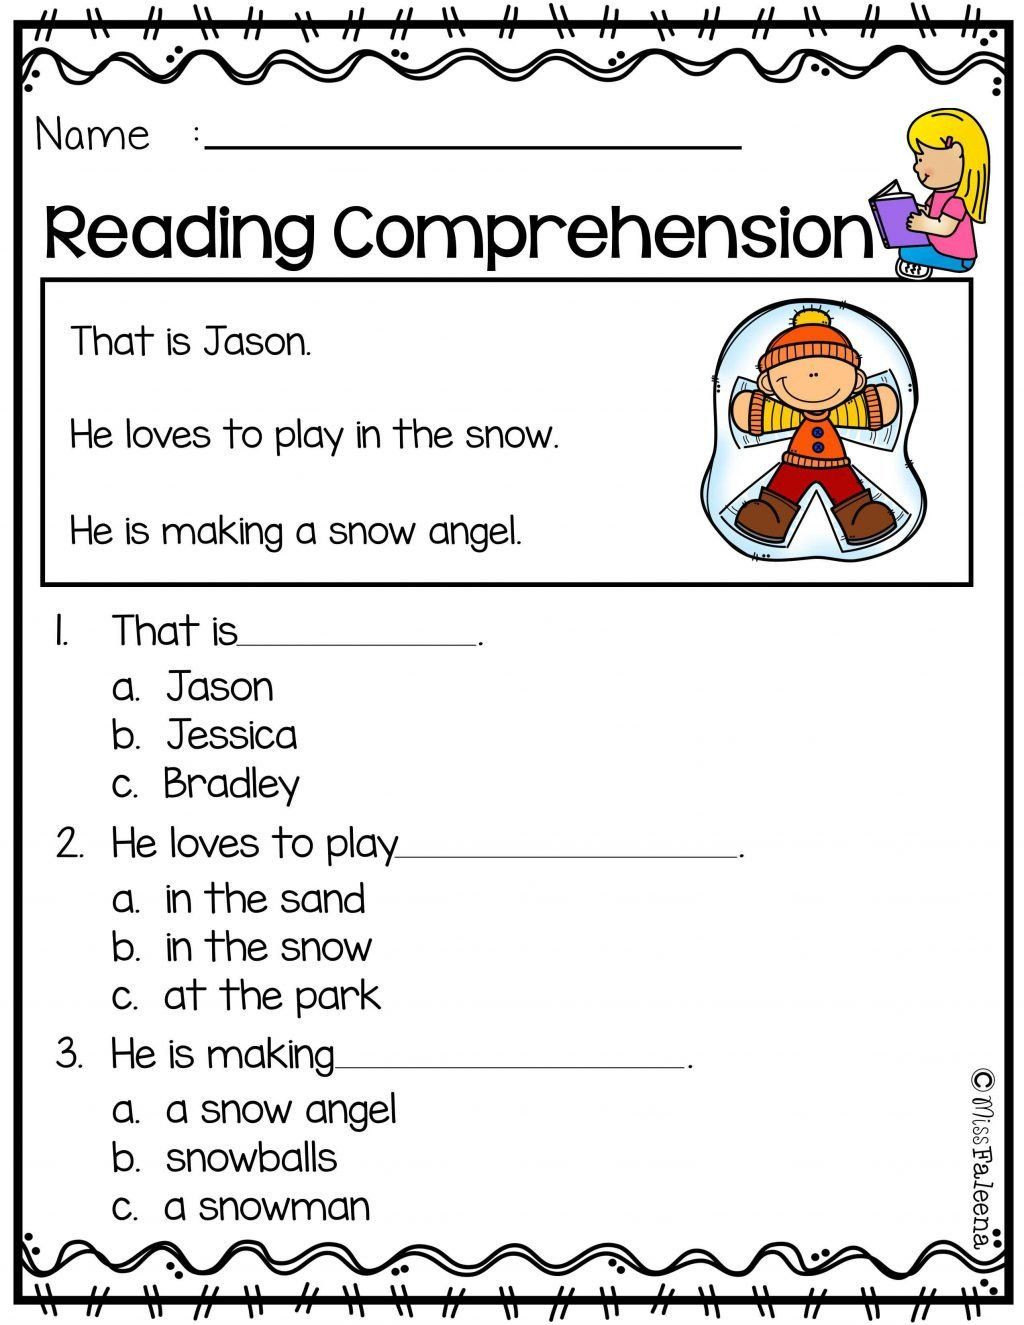 8th Grade Vocabulary Worksheets Pdf Science Worksheets for Kids Worksheet Ideas Science